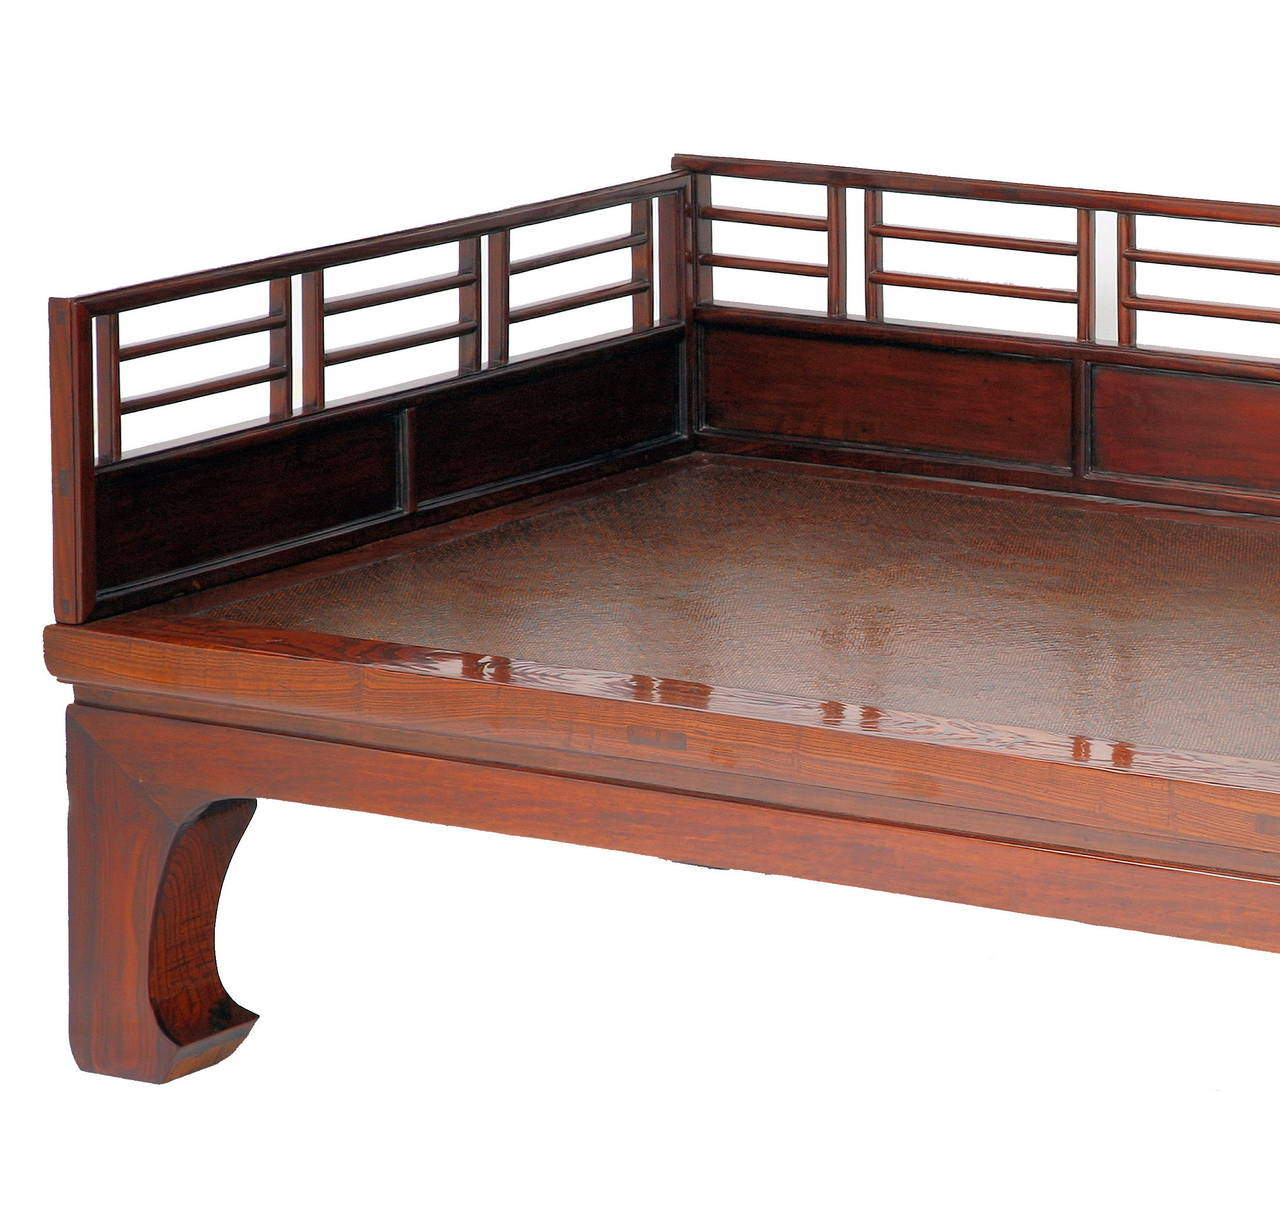 Of Superb Quality And Classic Ming Form, The Day Bed Featuring Railings  With Square